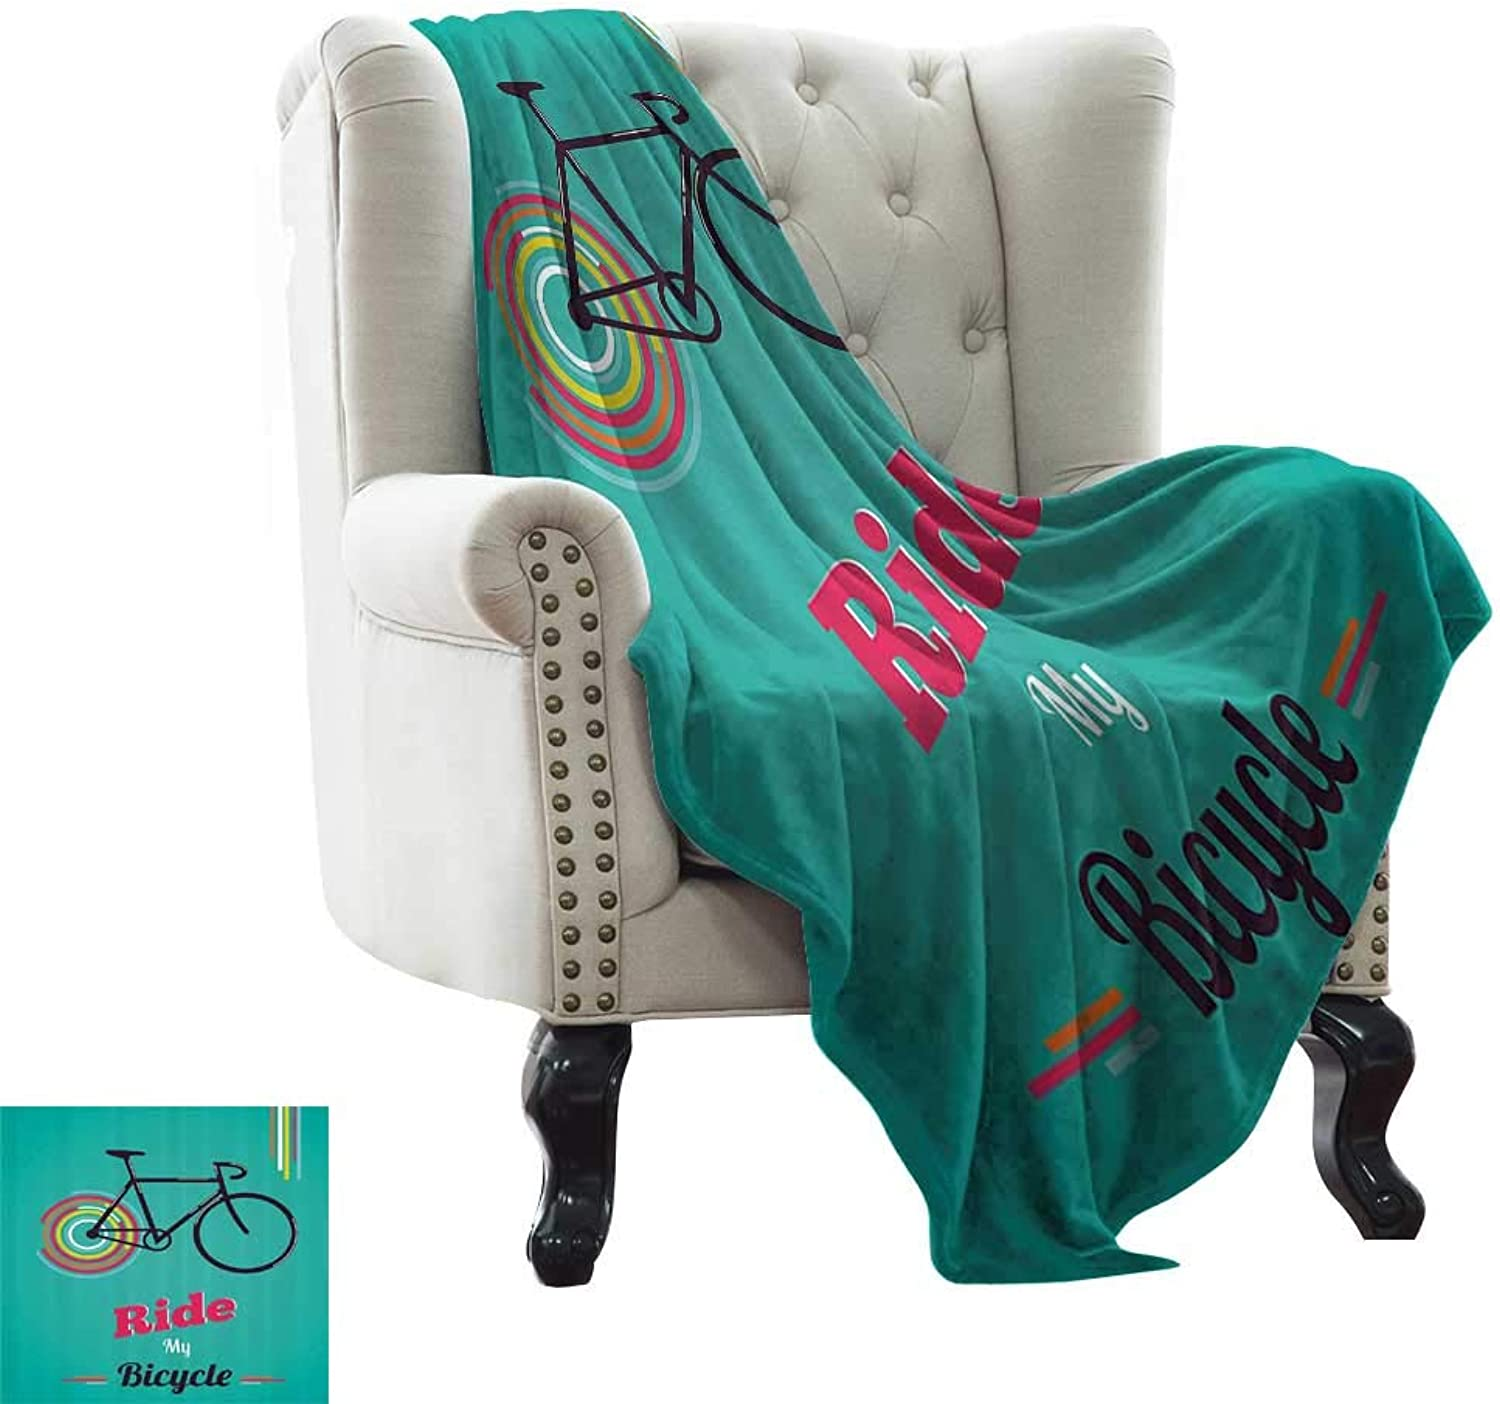 RenteriaDecor Vintage,Personalized Blankets Ride My Bicycle Theme Poster Style Retro Bike Hipster Art Illustration 60 x50  Blanket Warm Kids Festival Gift Teal Hot Pink Black